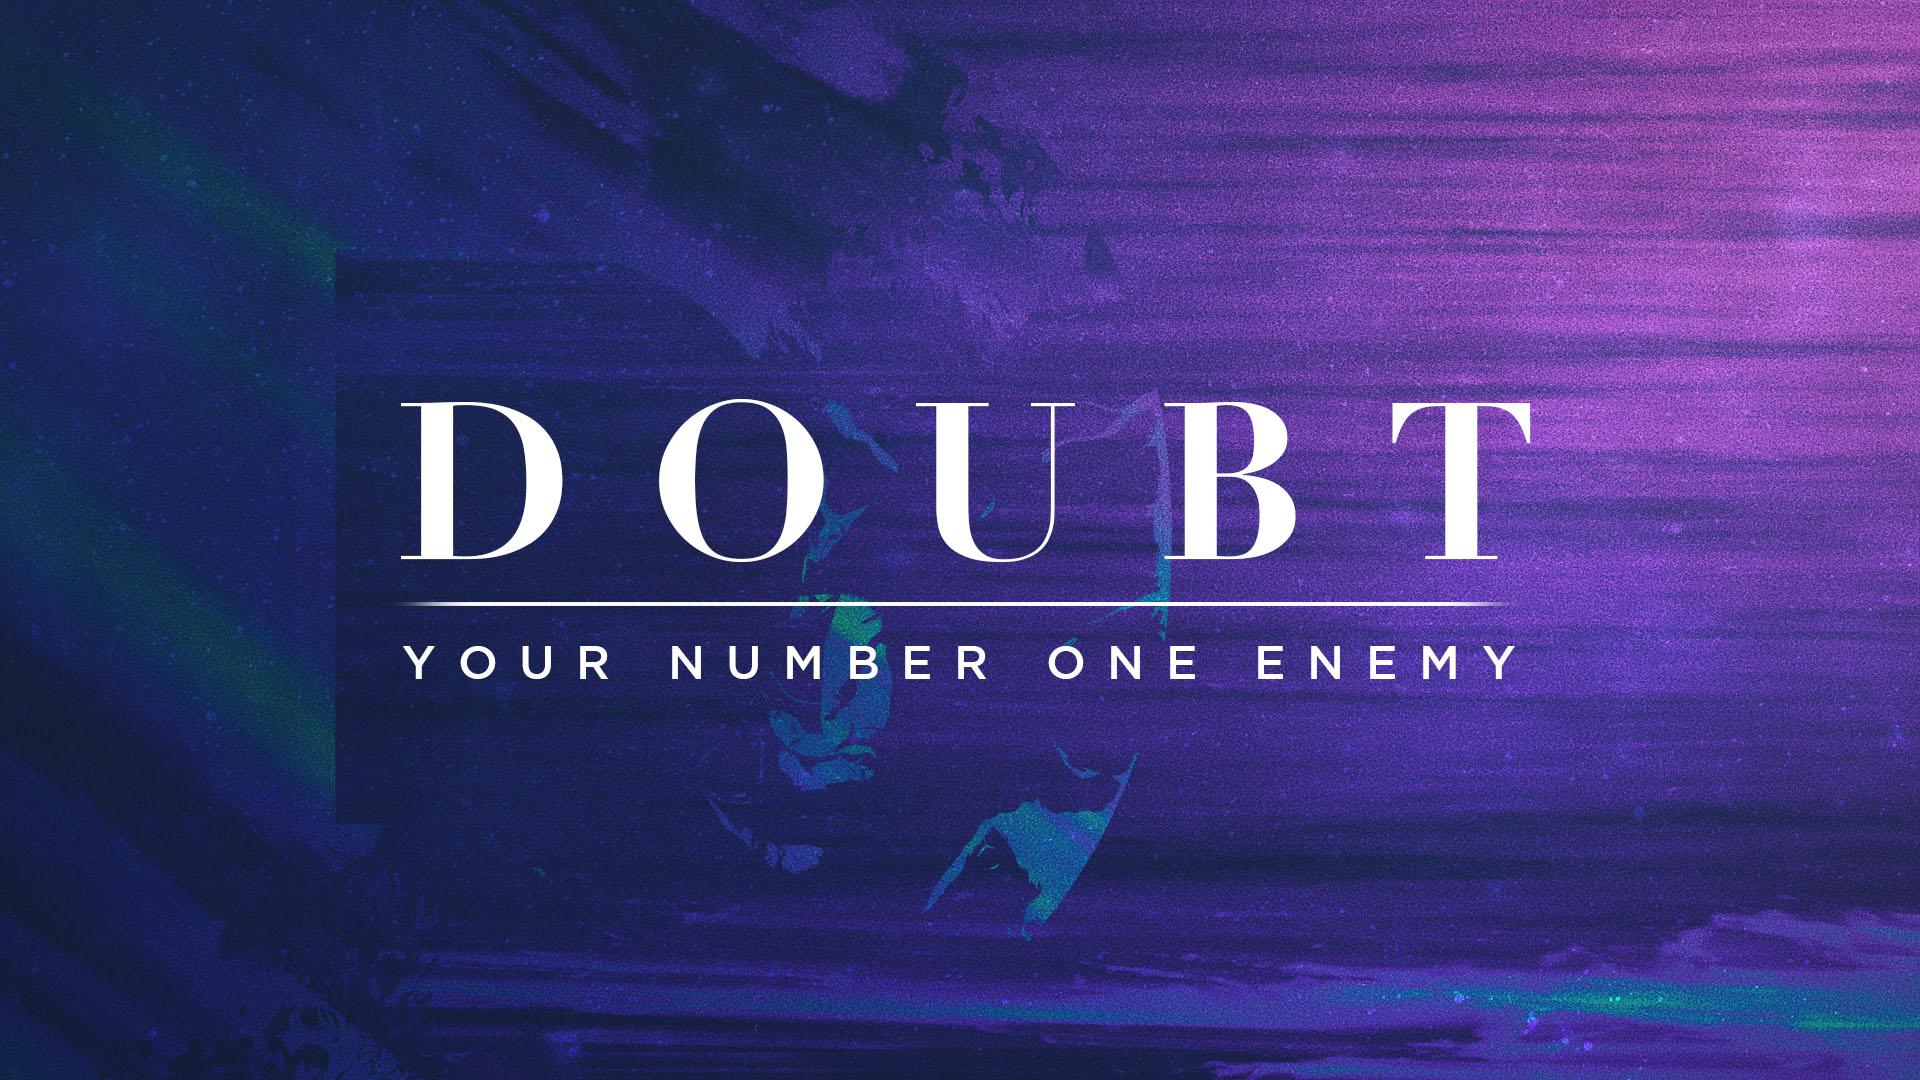 Doubt Enemy Graphic 2.jpg